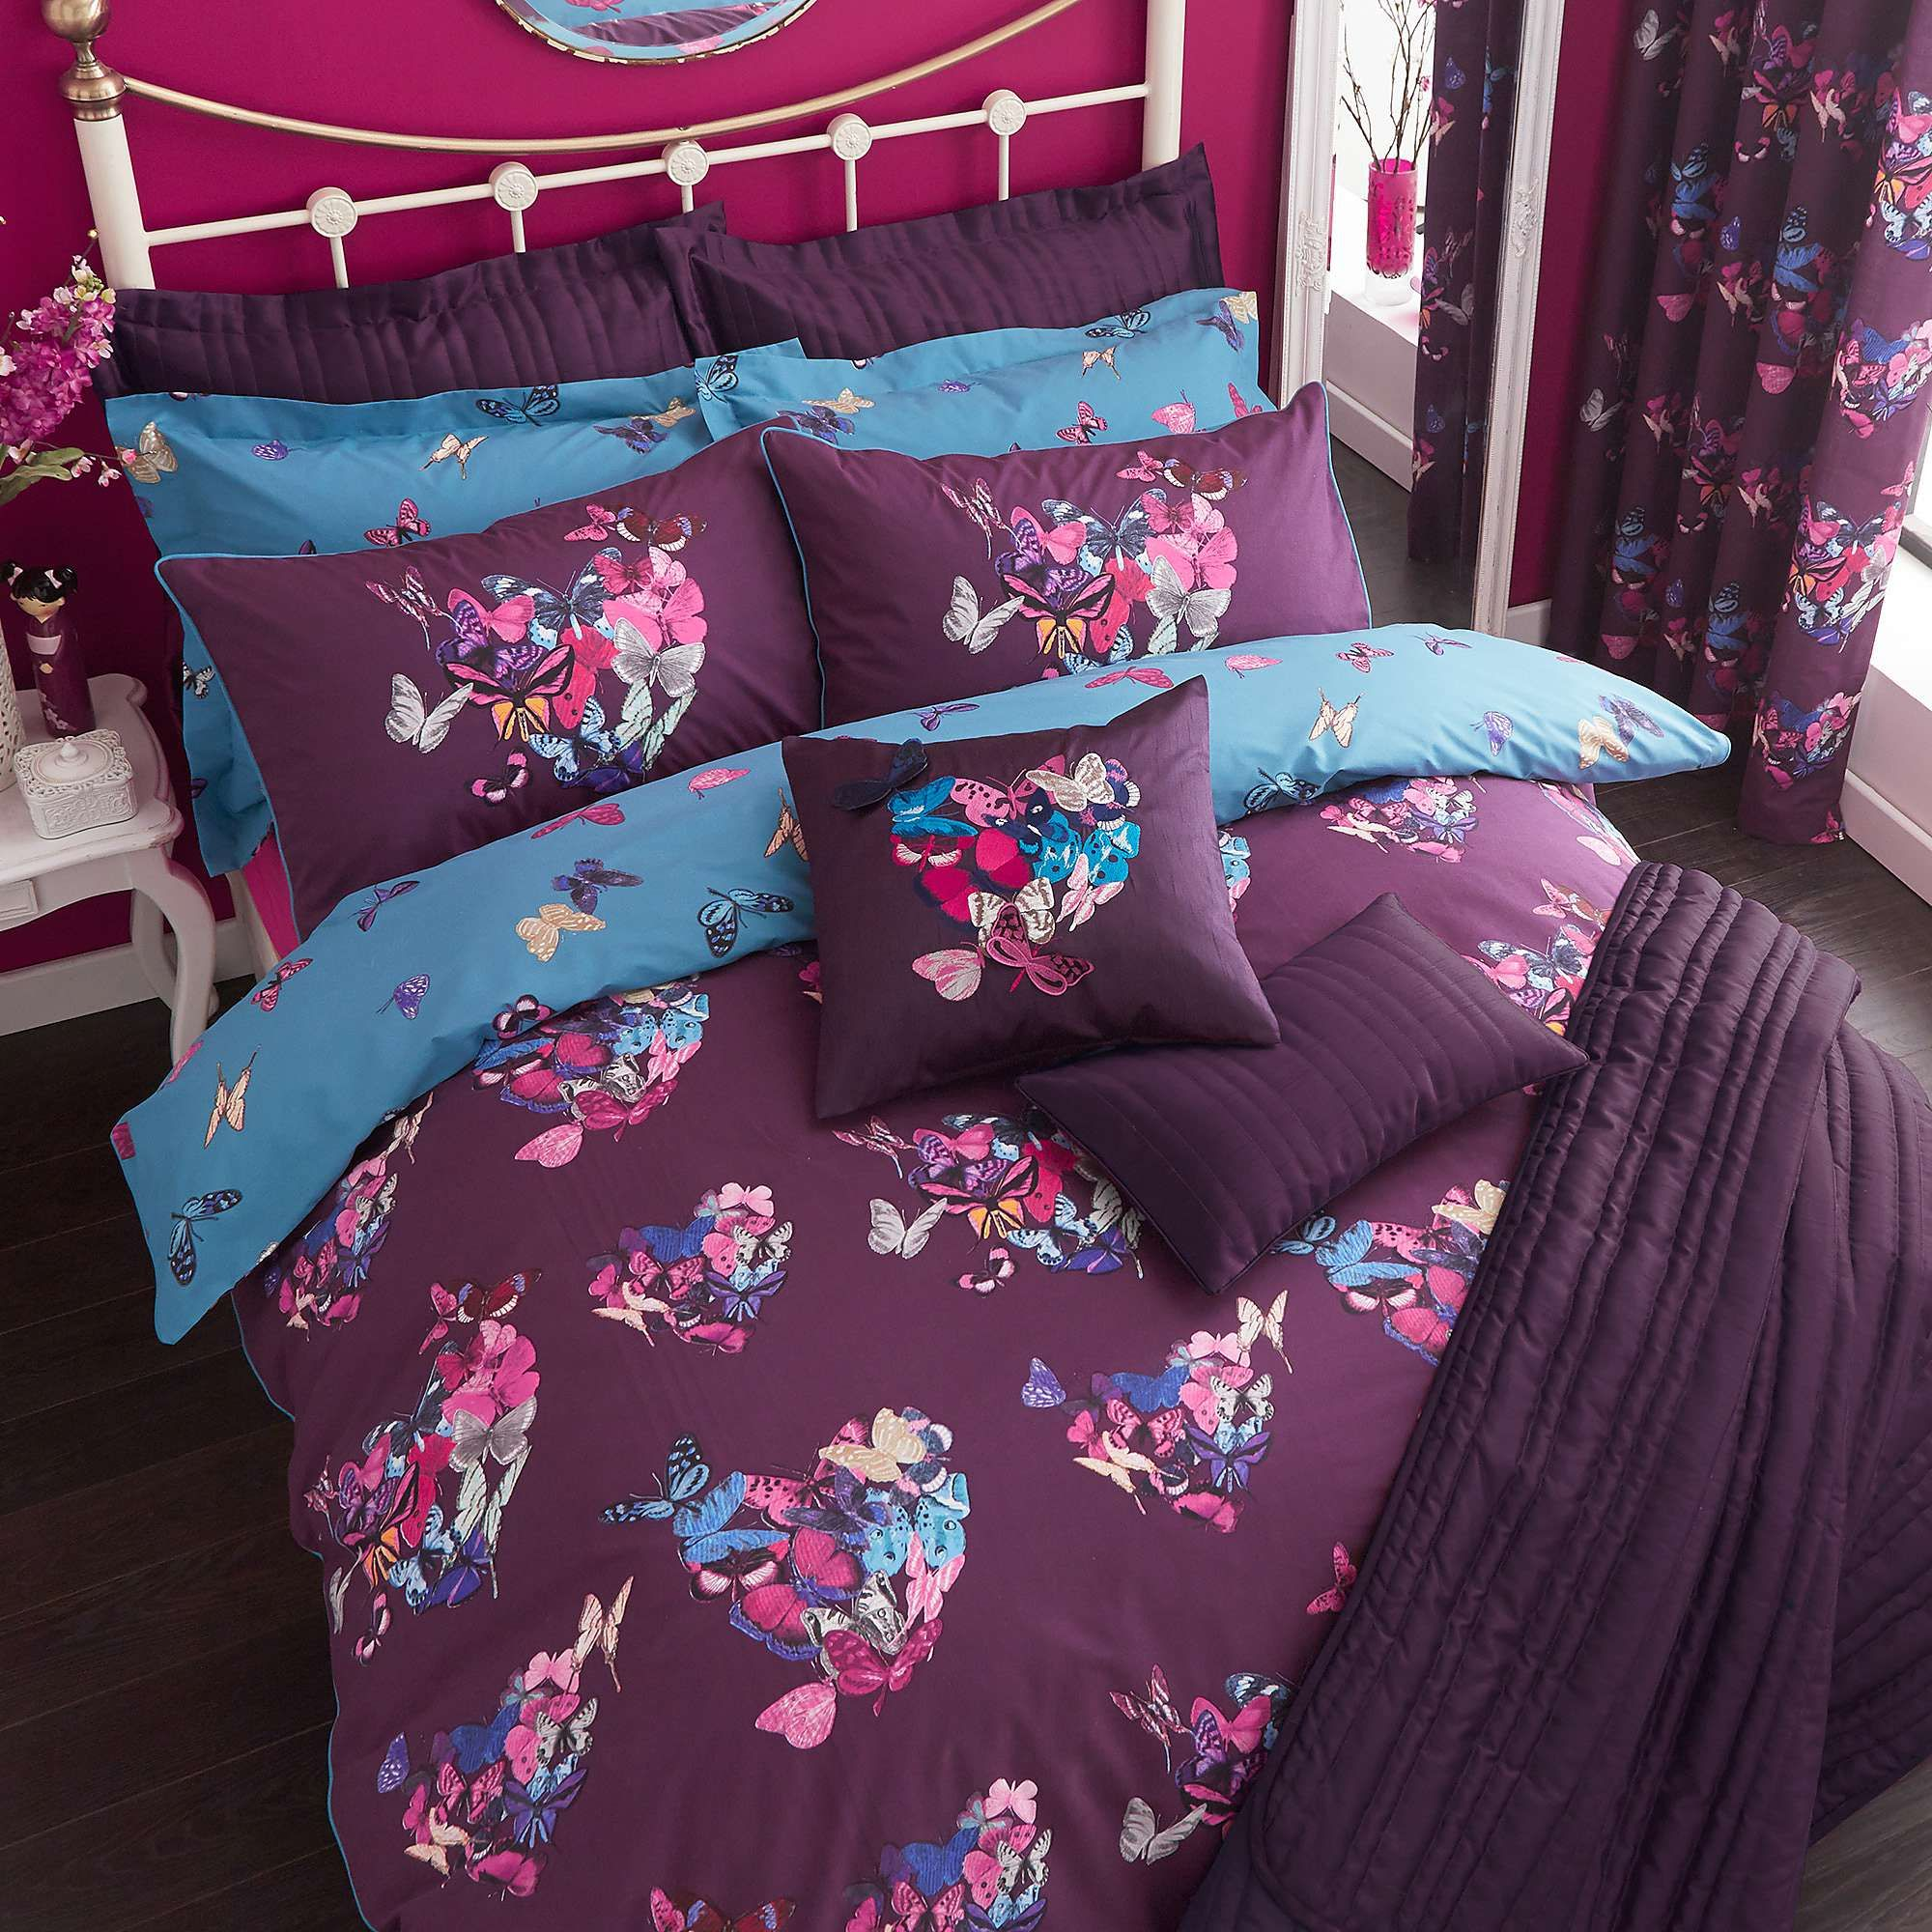 infoz piece duvet coverlets bedroom the print twin ringgold apartment carrie laude faith bedspreads bedding in bag essence purple comforter lavender quilt walmartcom complete blue lilac set and home sets quilts patterns zebra plum